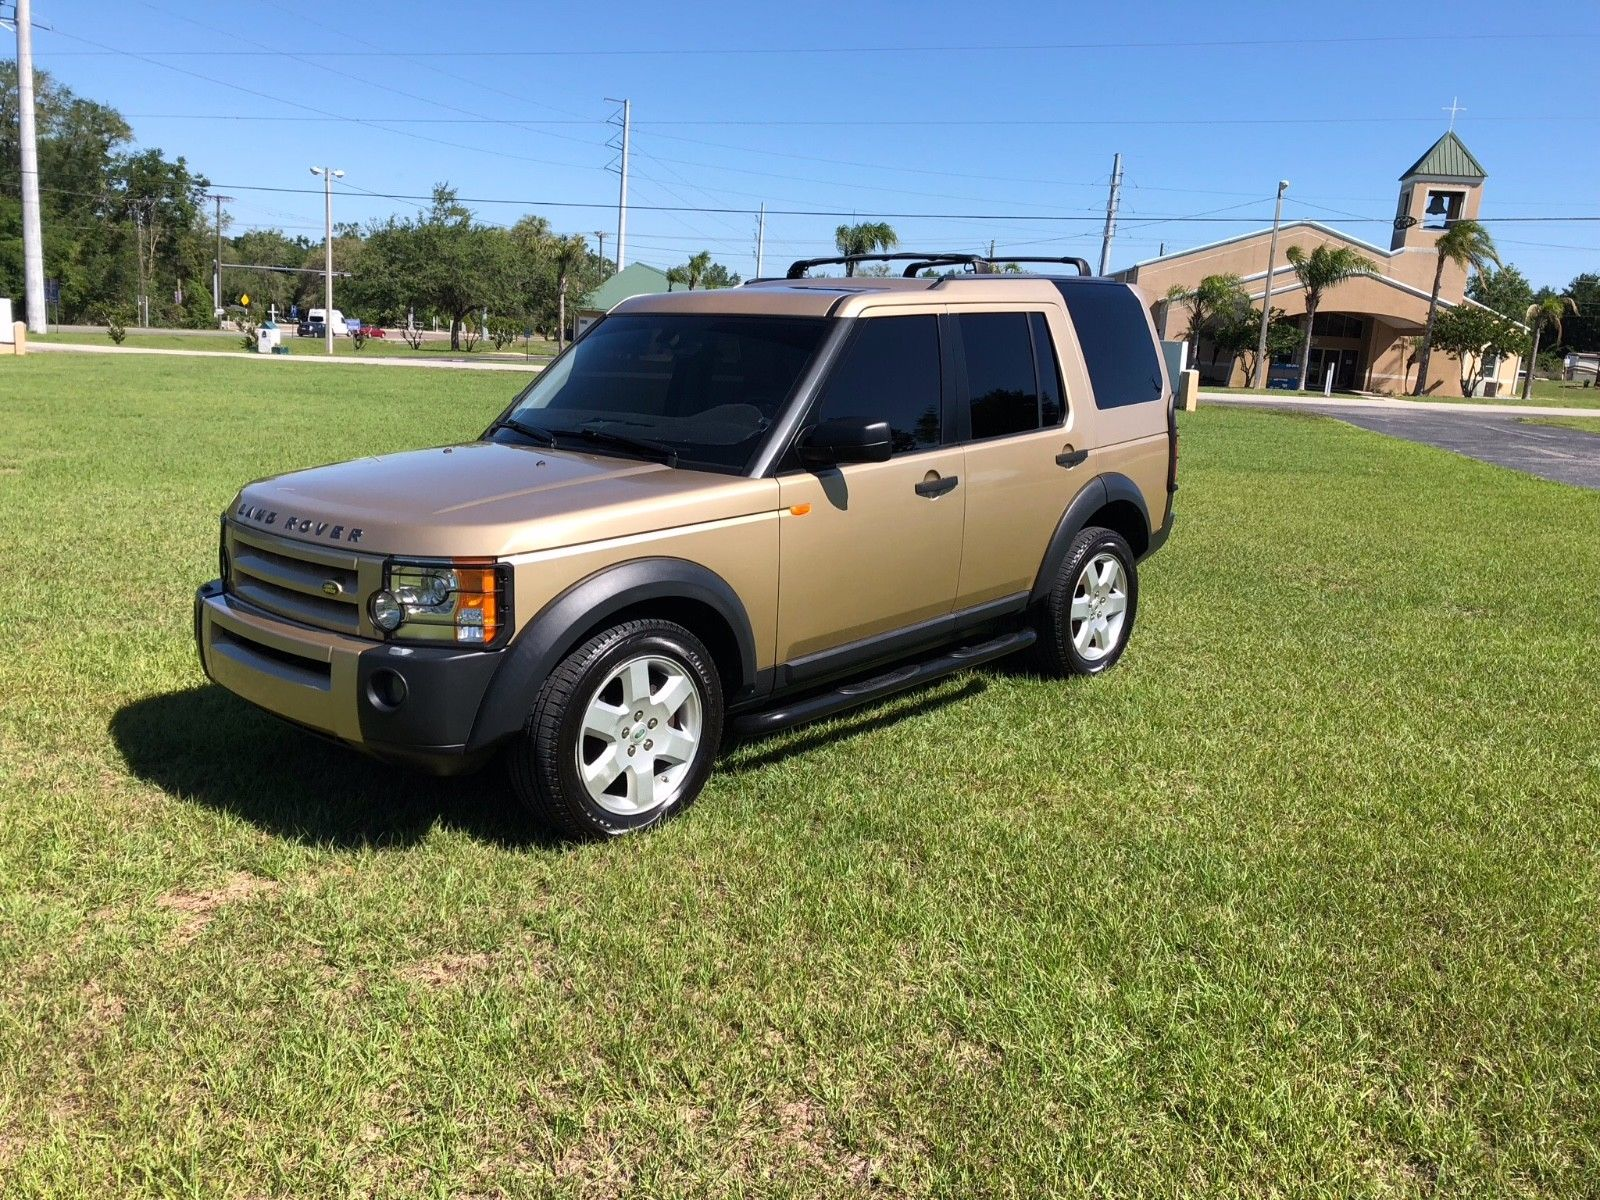 silver sale en landrover hse phoenix online cert auto salvage of az view rover carfinder auctions in for right title land lot on copart